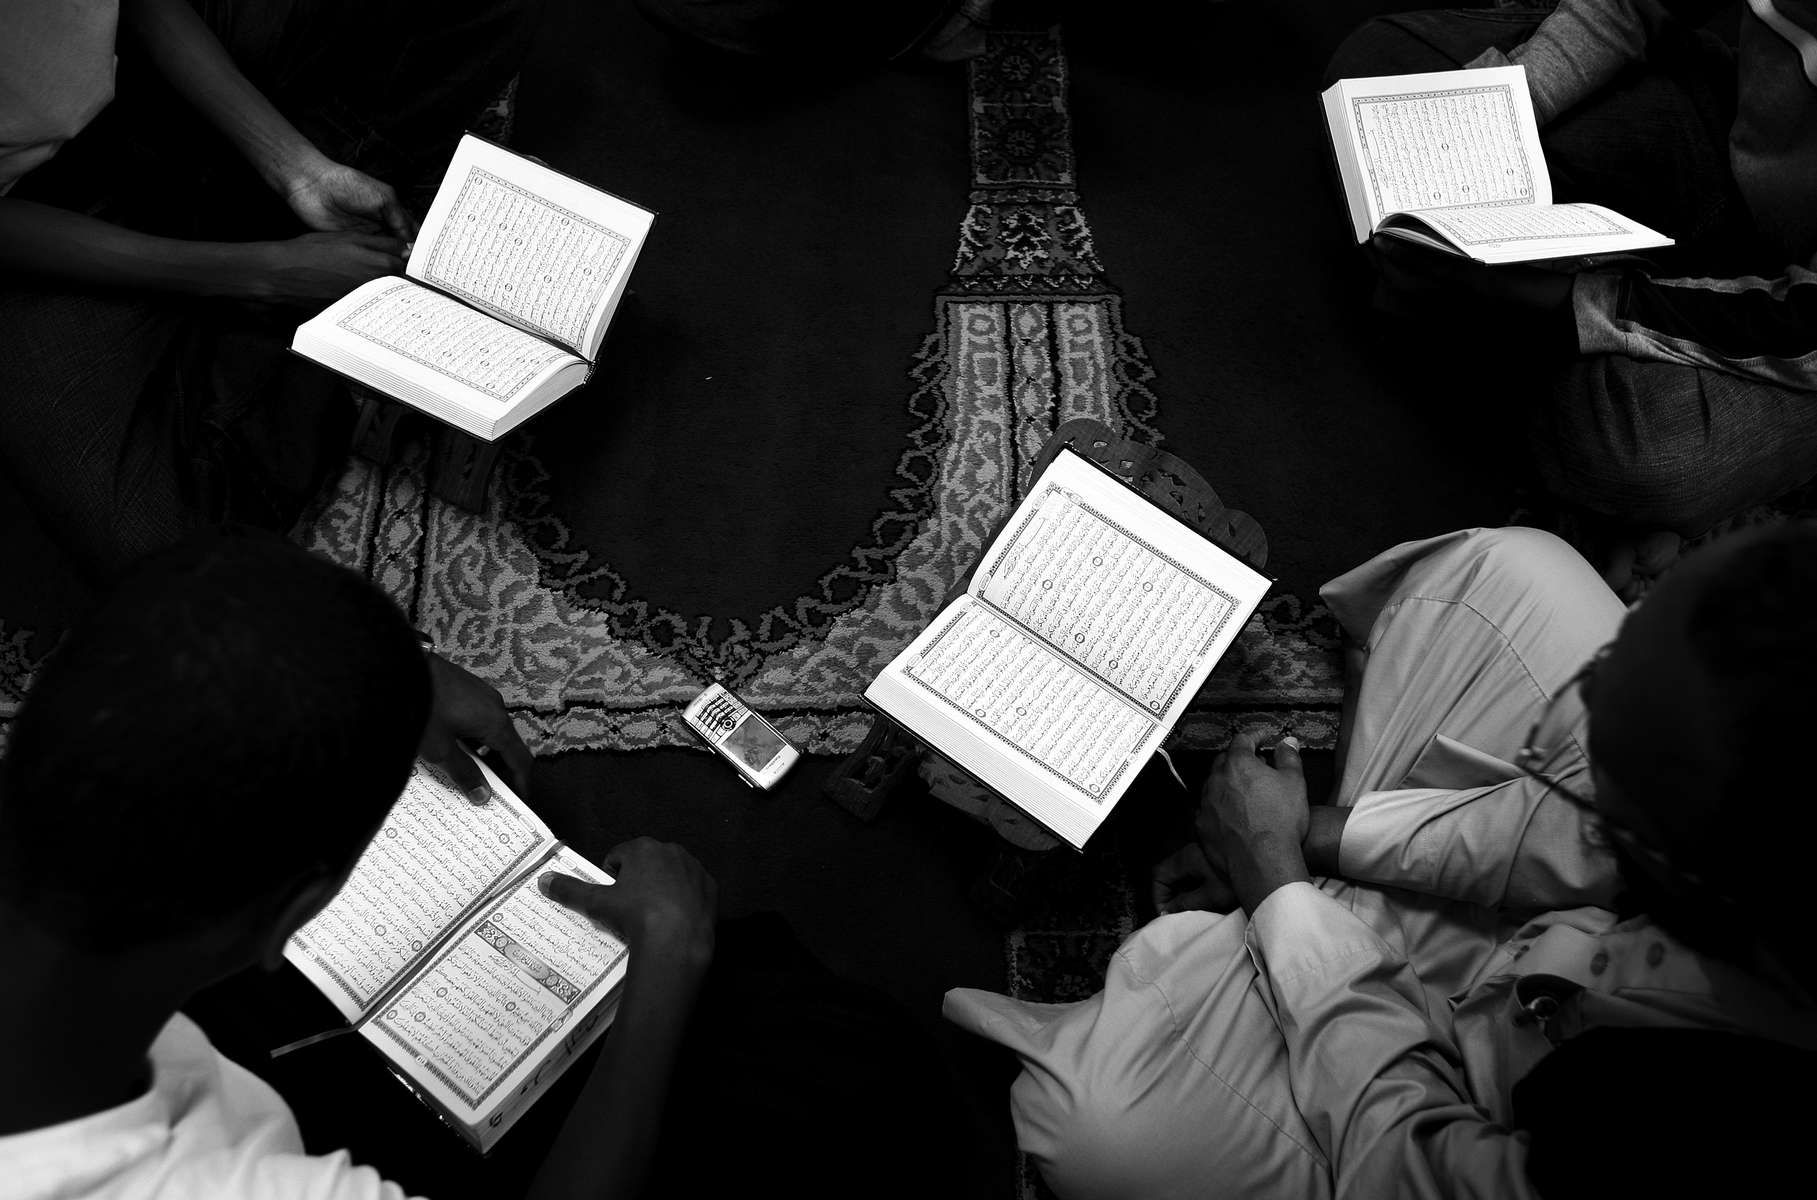 Teenagers study the Quran at the Islamic Center of St. Cloud.